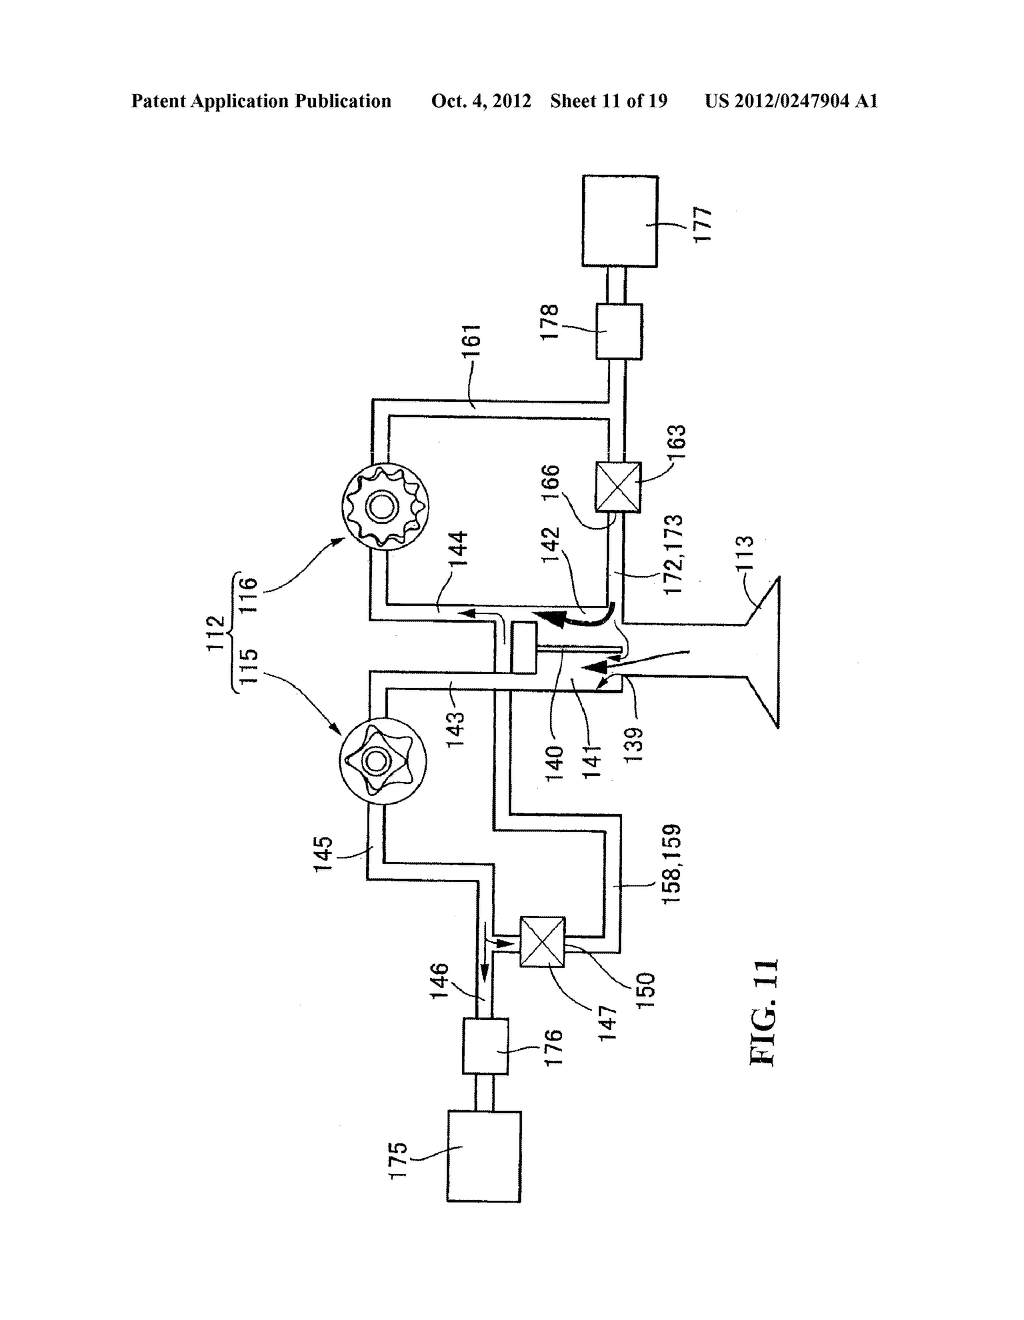 Internal Combustion Engine And Supplying Oil Path Structure For Diagram Hydraulic Clutch In Schematic Image 12